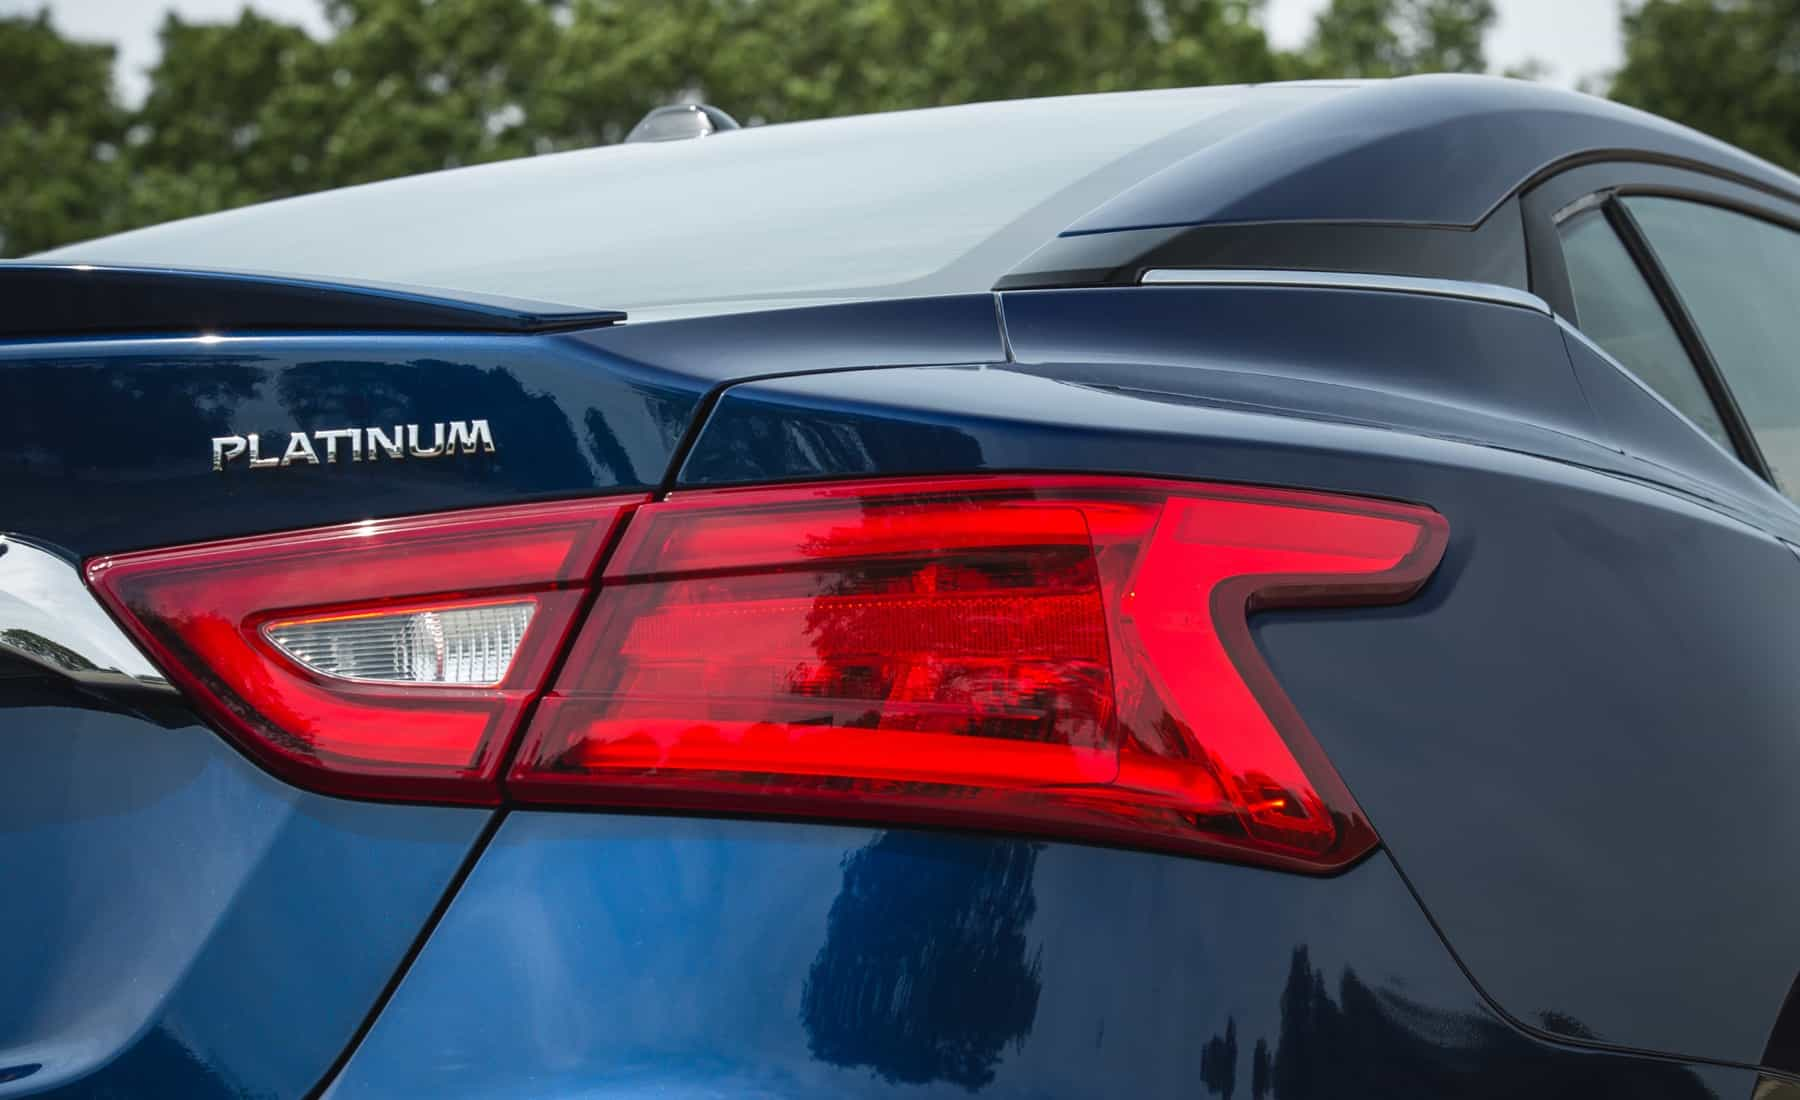 2017 Nissan Maxima Exterior View Taillight (Photo 11 of 40)